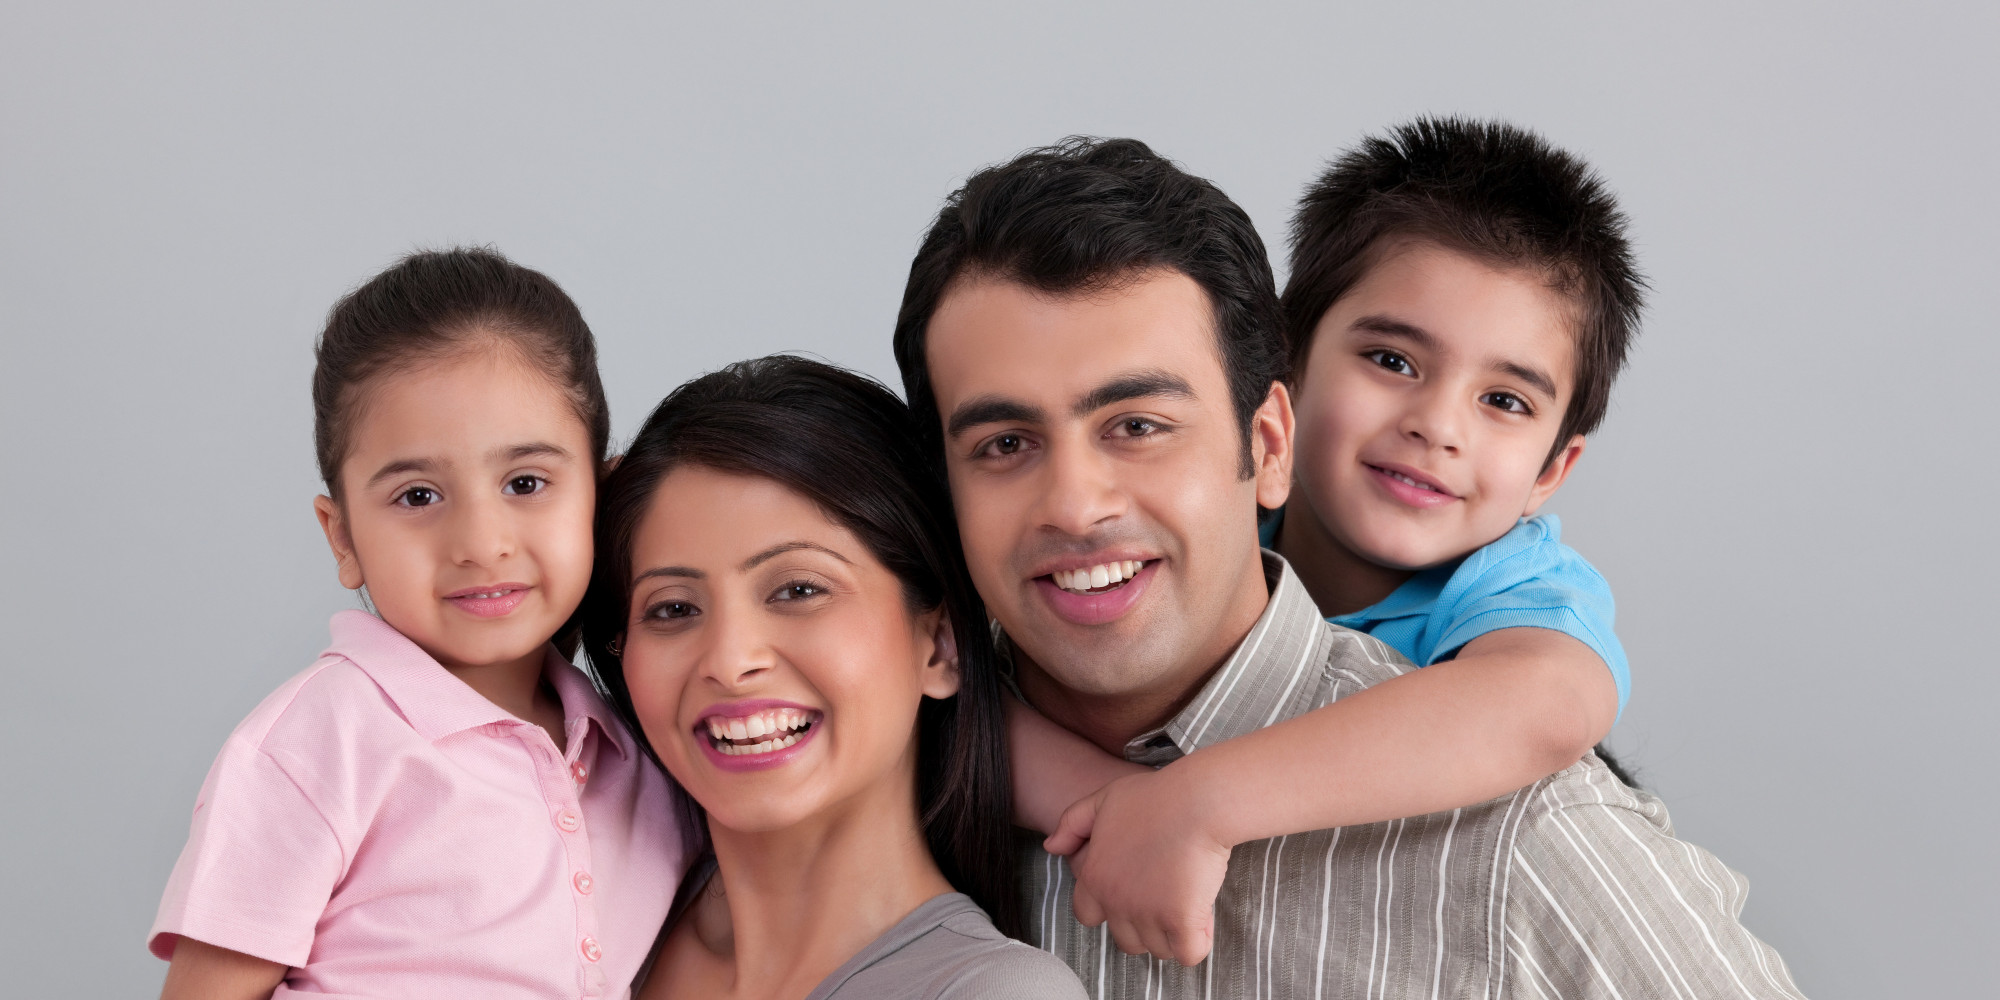 advantages of living with paents in A change in status of aging parents like forgetfulness, wandering (or fear of leaving home), or poor housekeeping and hygiene habits, etc, calls for adult children to look into alternative living arrangements to ensure their parents' health and safety.